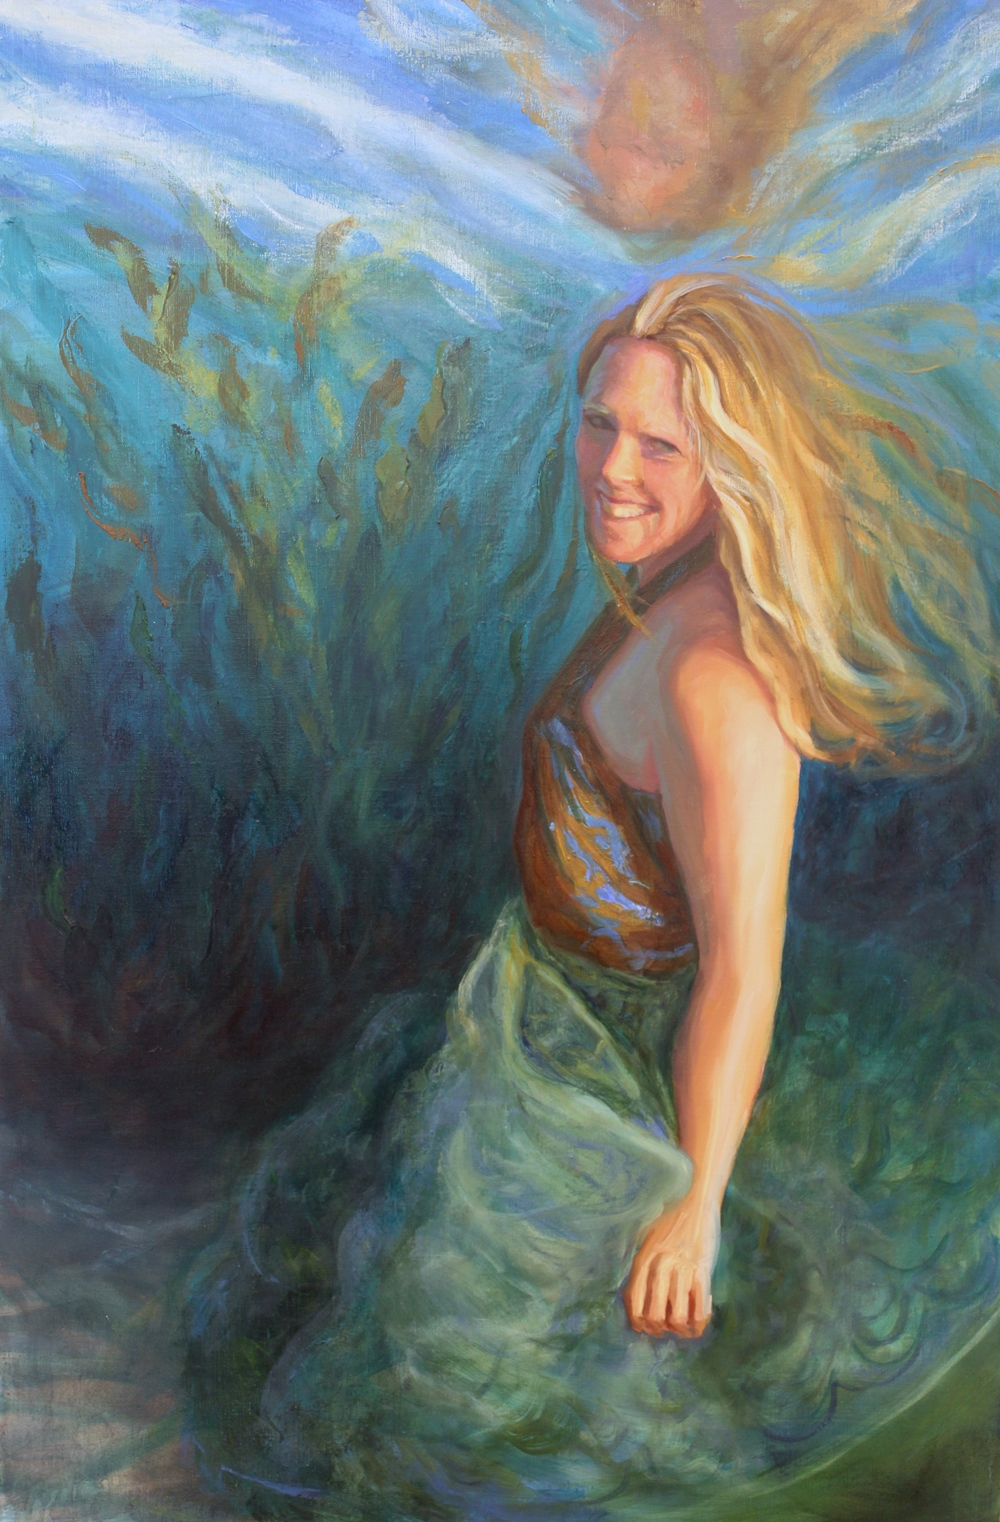 Stephanie Mutz, oil on linen, 24x36